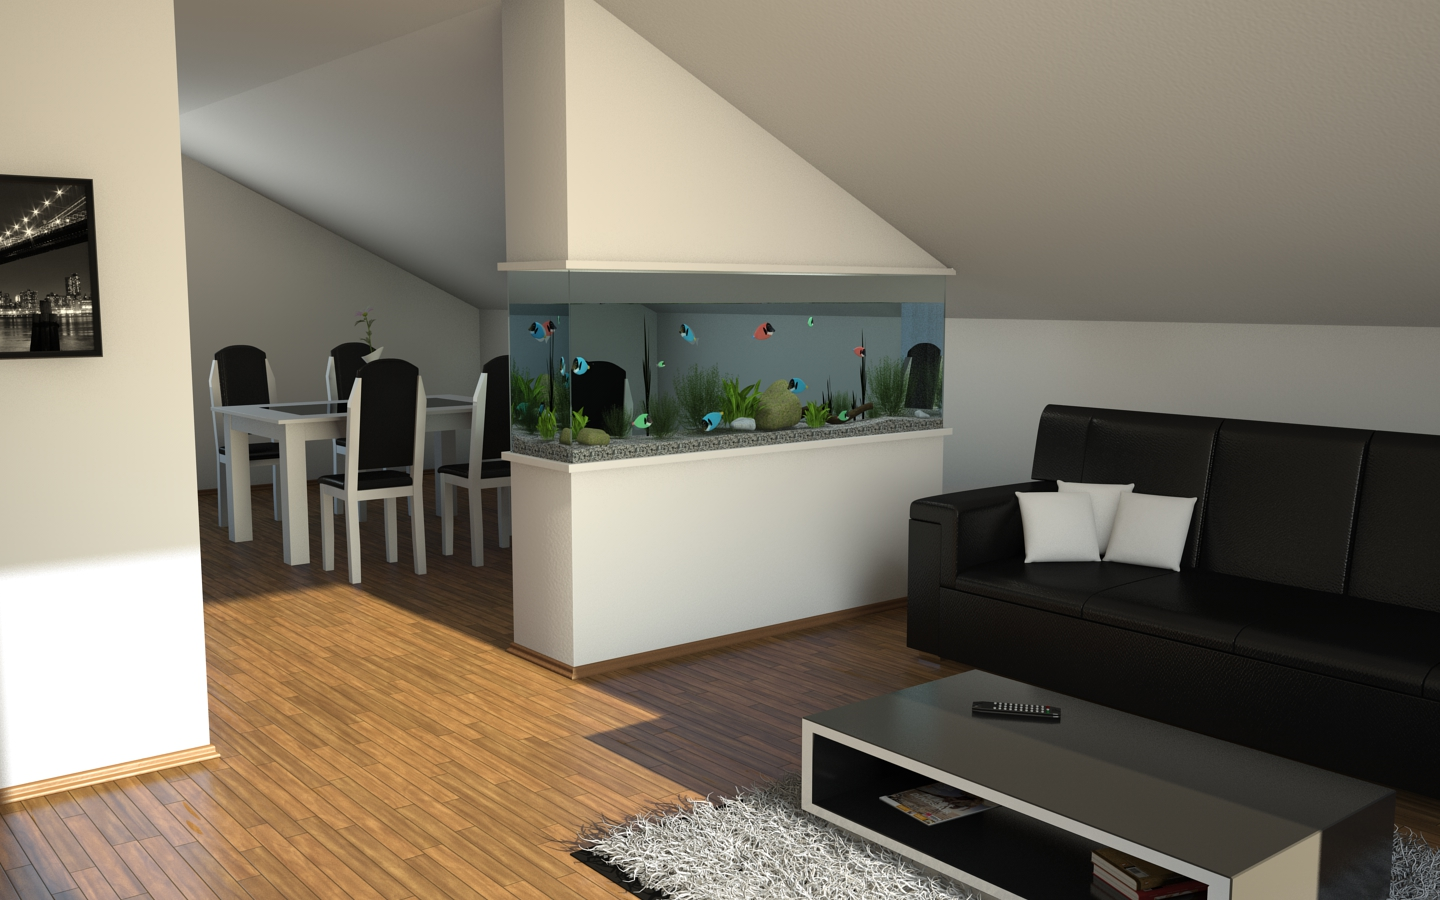 Living room aquarium by slographic